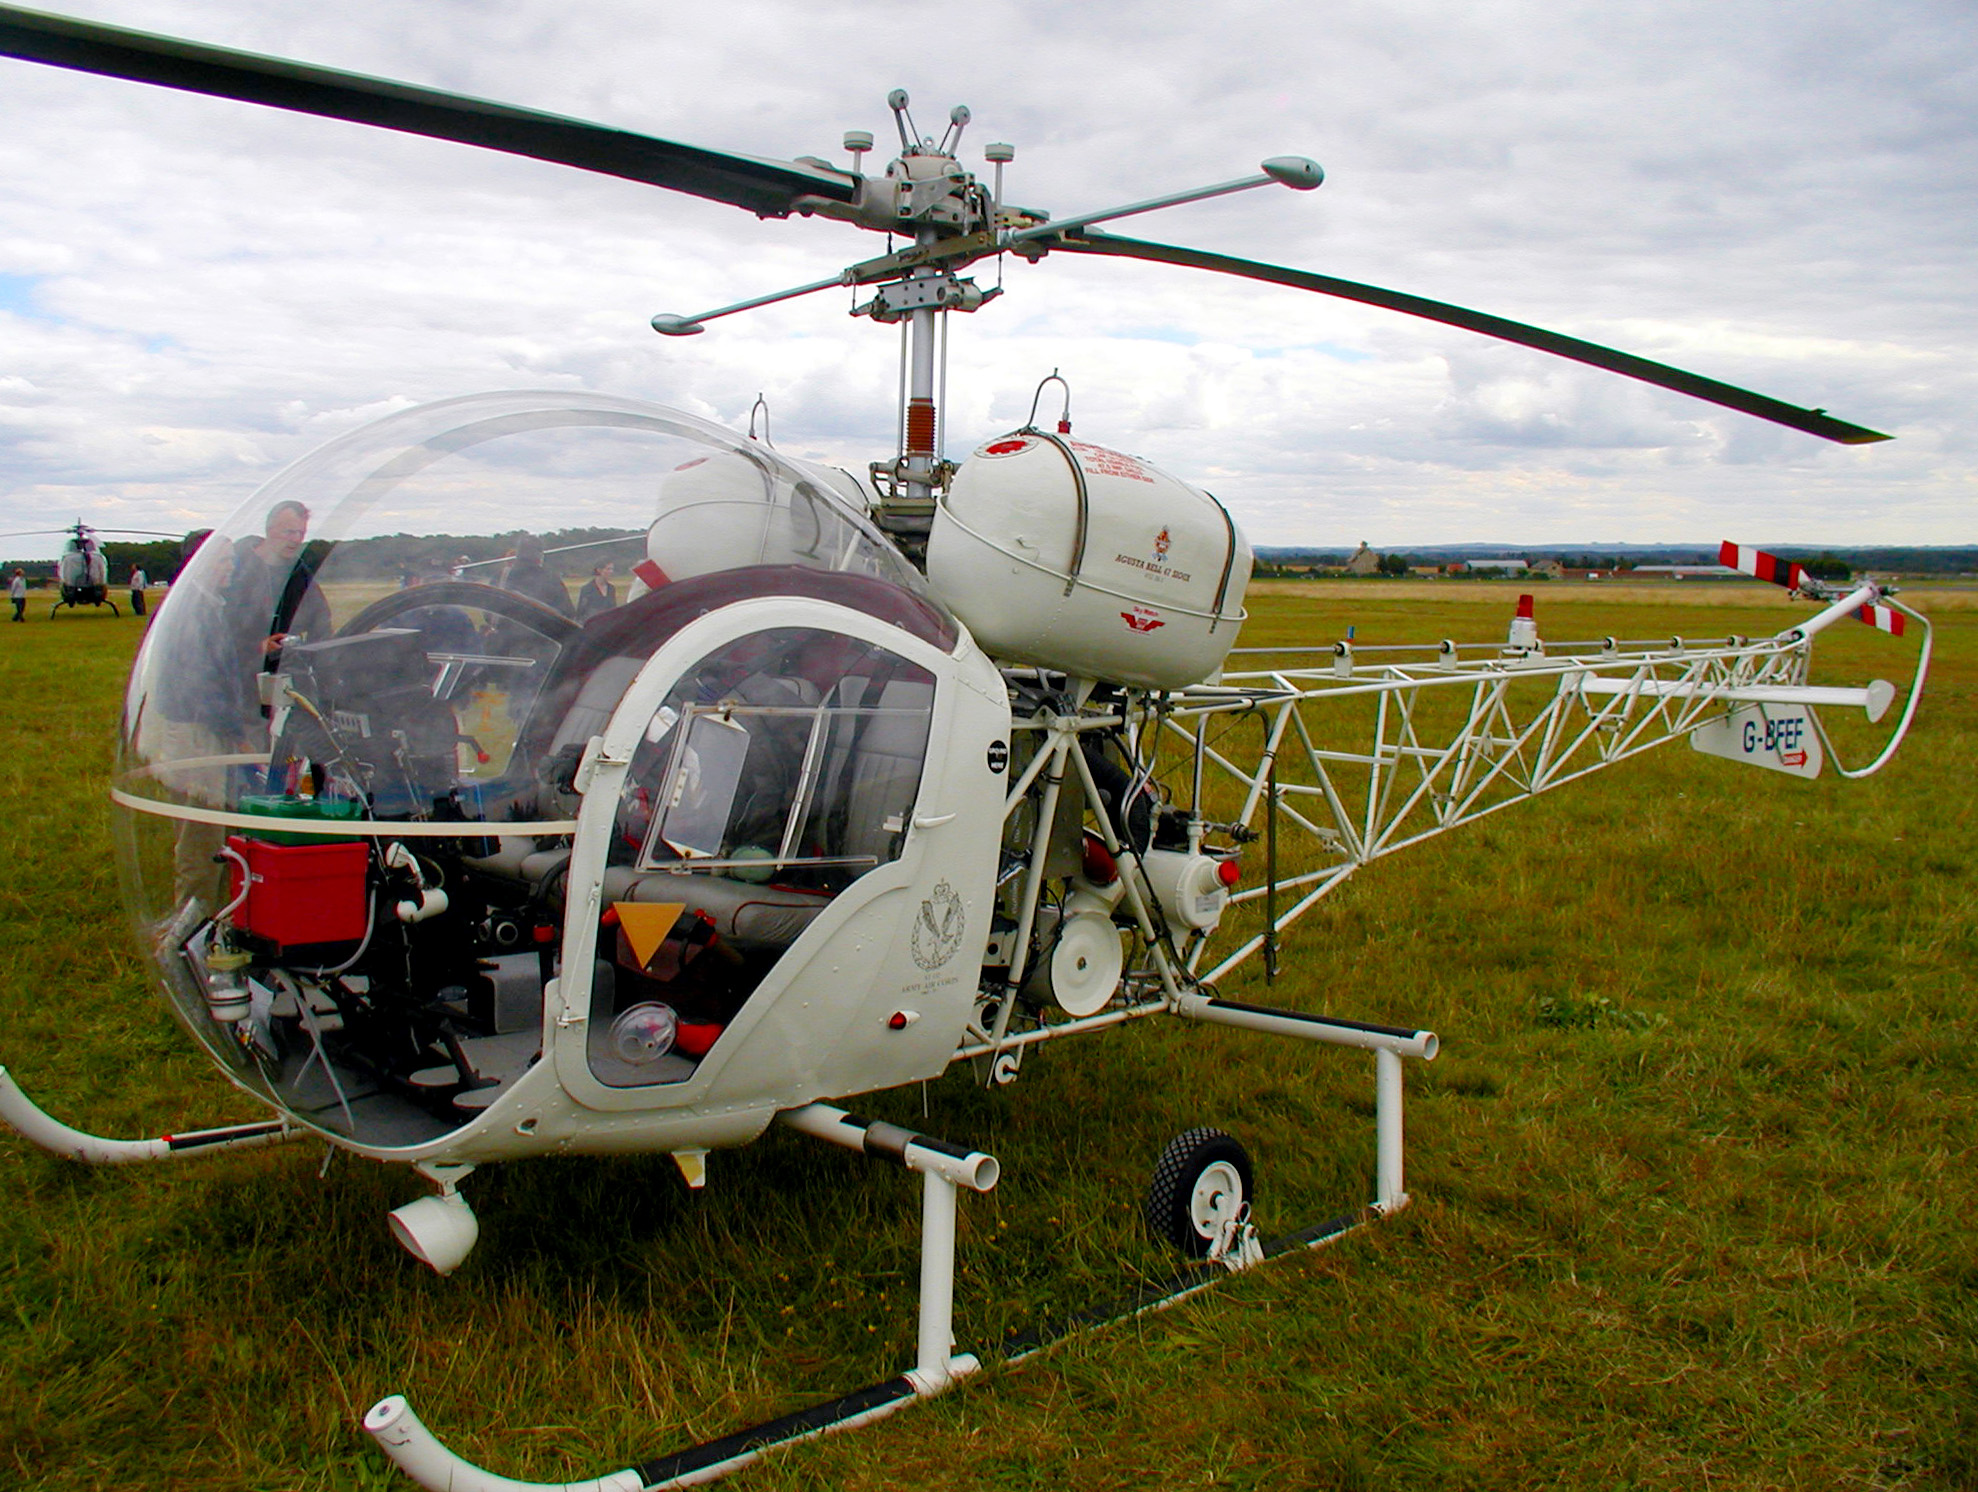 soloy helicopters with Why Fly When You Can Beat Air Into on Nh Industries Nh90 likewise Airbus Helicopters H145 also Hawker Hunter further SoloyAviation additionally Soloy Delivers Portable Helipads To Utility  pany.